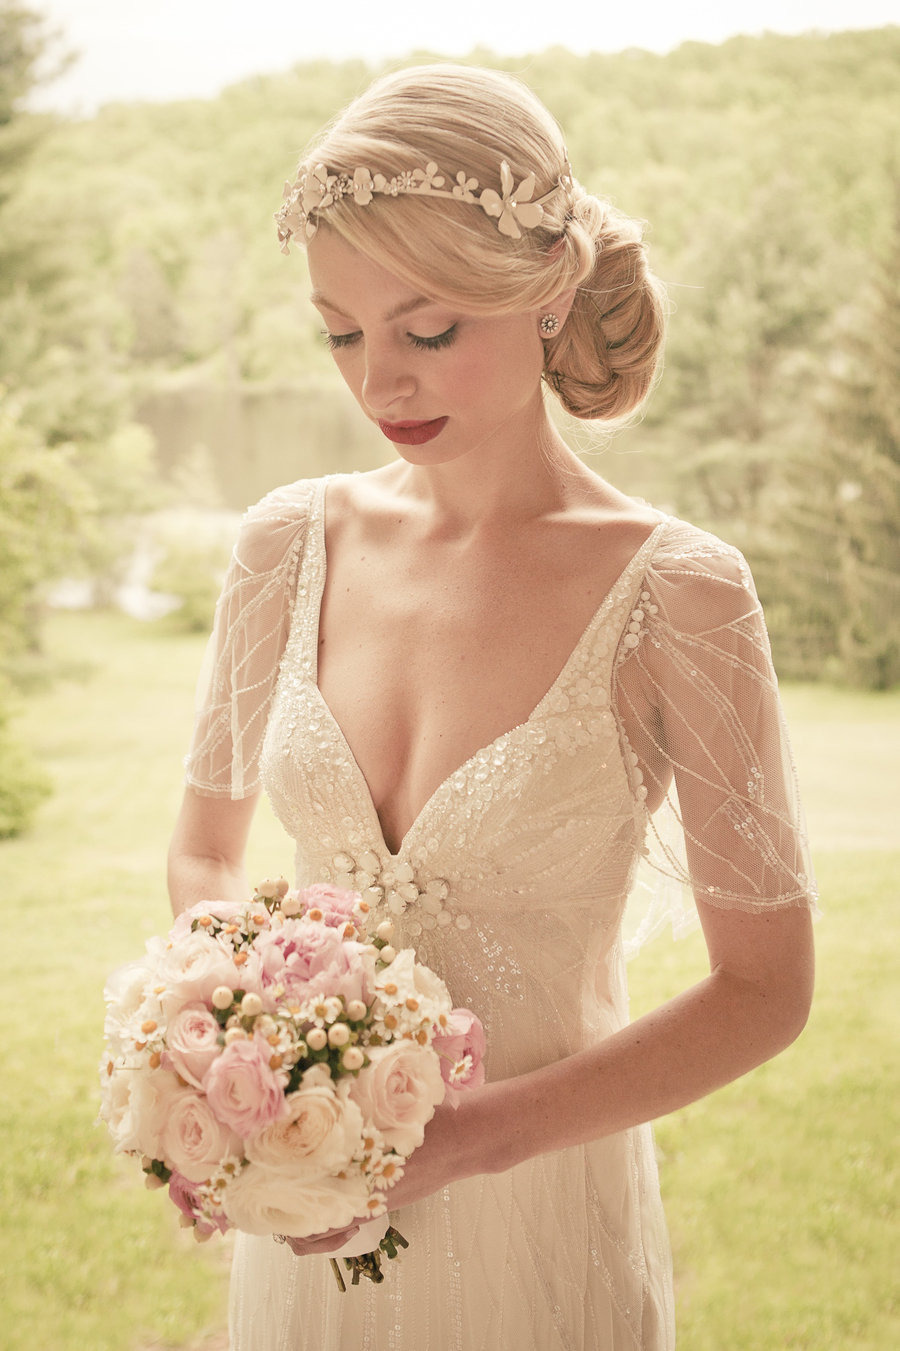 Shabby Chic Vintage Wedding DressesWedding Dressesdressesss - Shabby Chic Wedding Dress